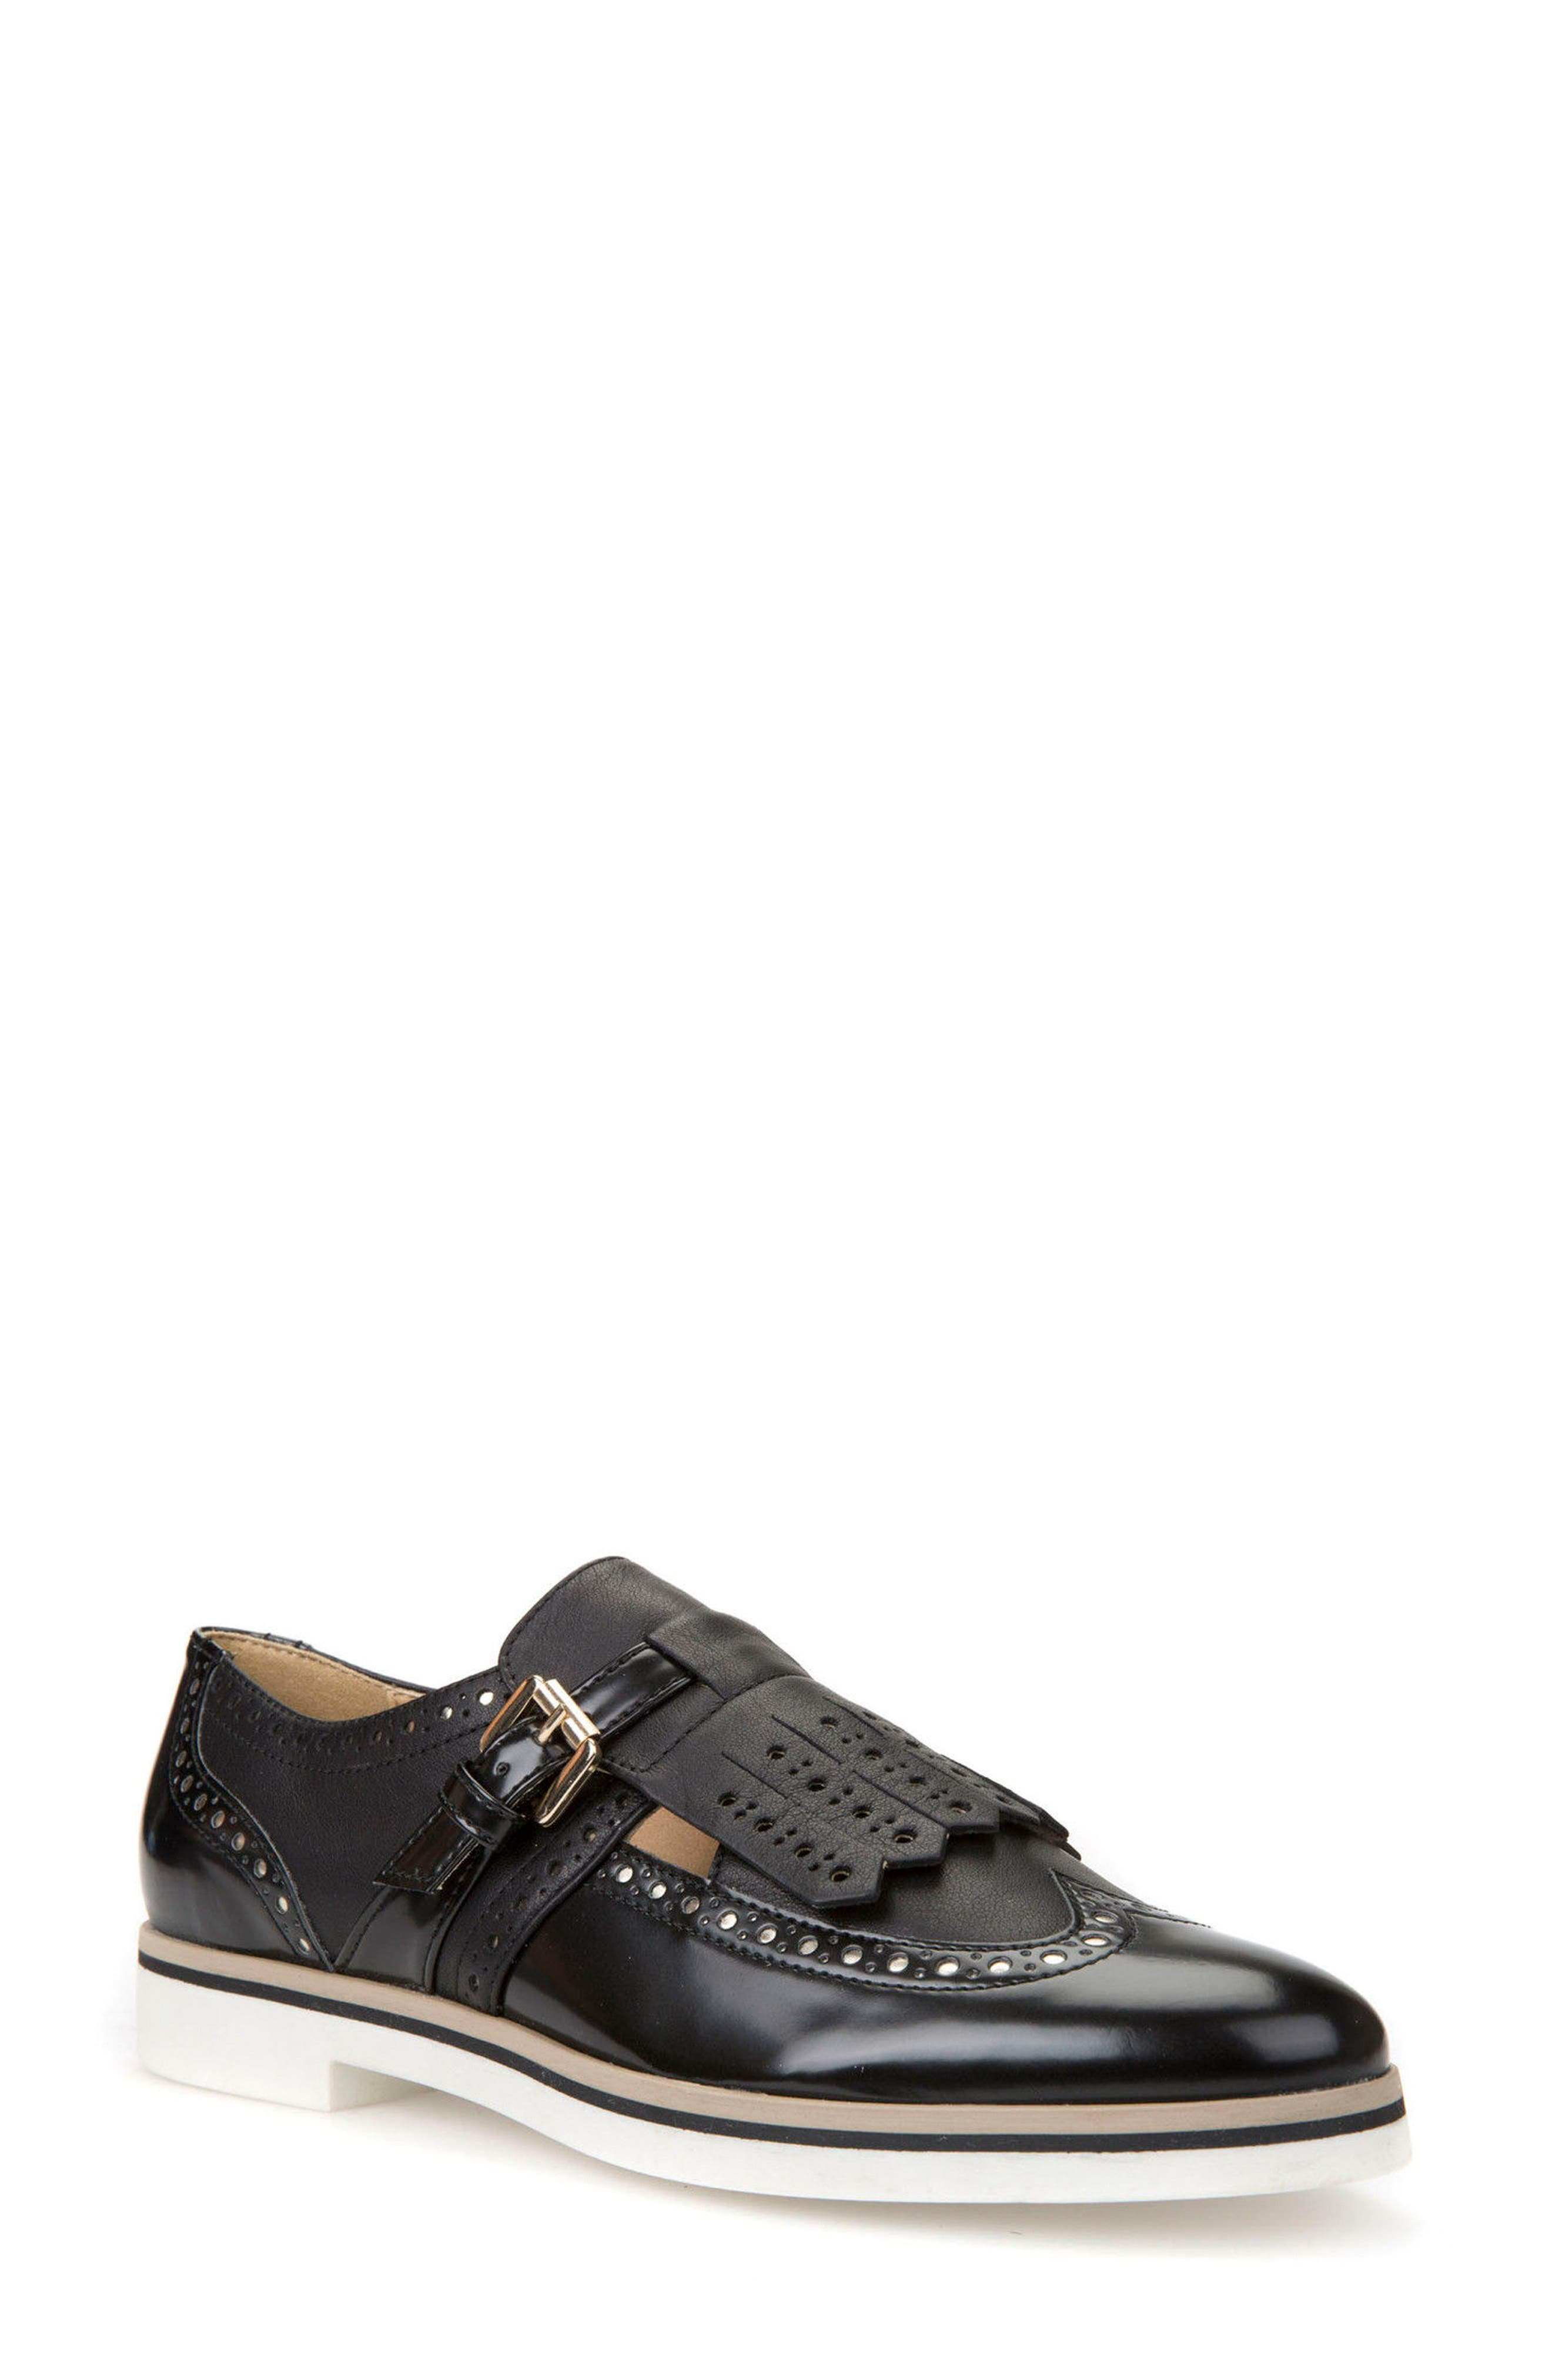 Janalee Cutout Loafer,                         Main,                         color, Black Leather